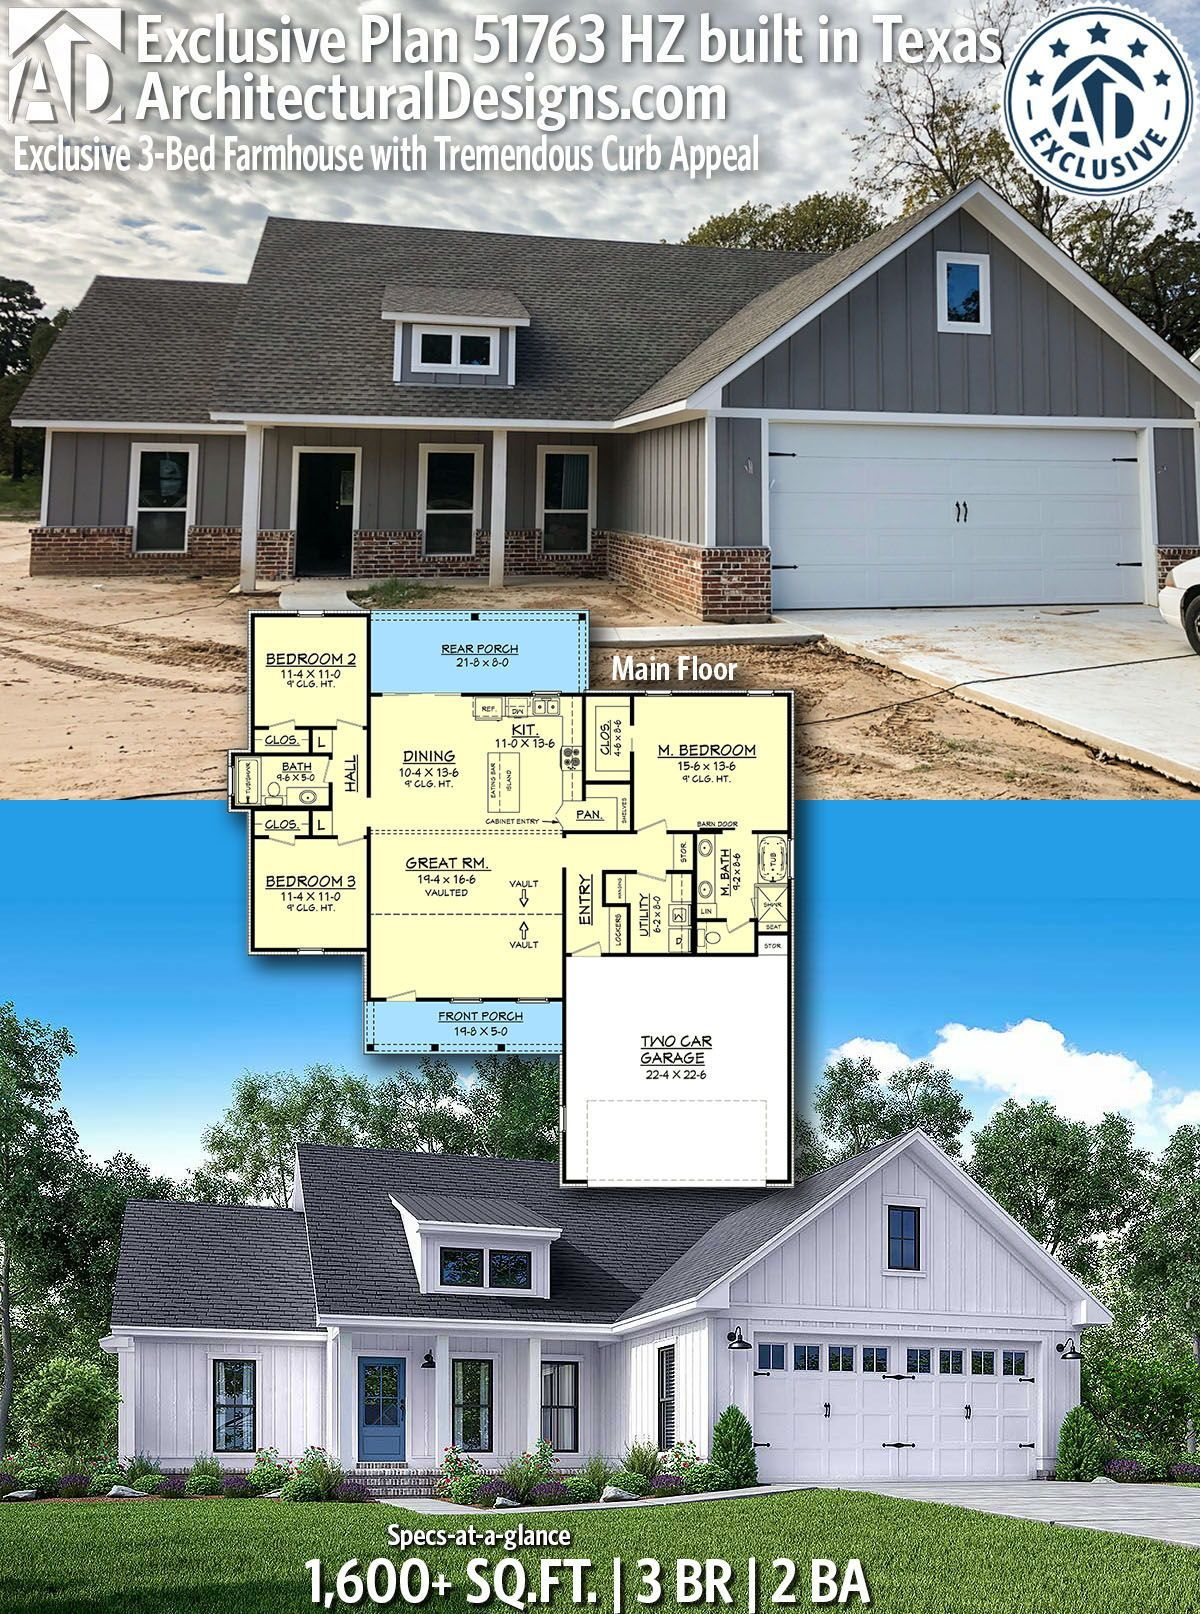 Architectural Designs 51763HZ comes to life in Texas! This home gives you 3 bedrooms, 2 baths and 1,600  sq. ft. Ready when you are! Where do YOU want to build?